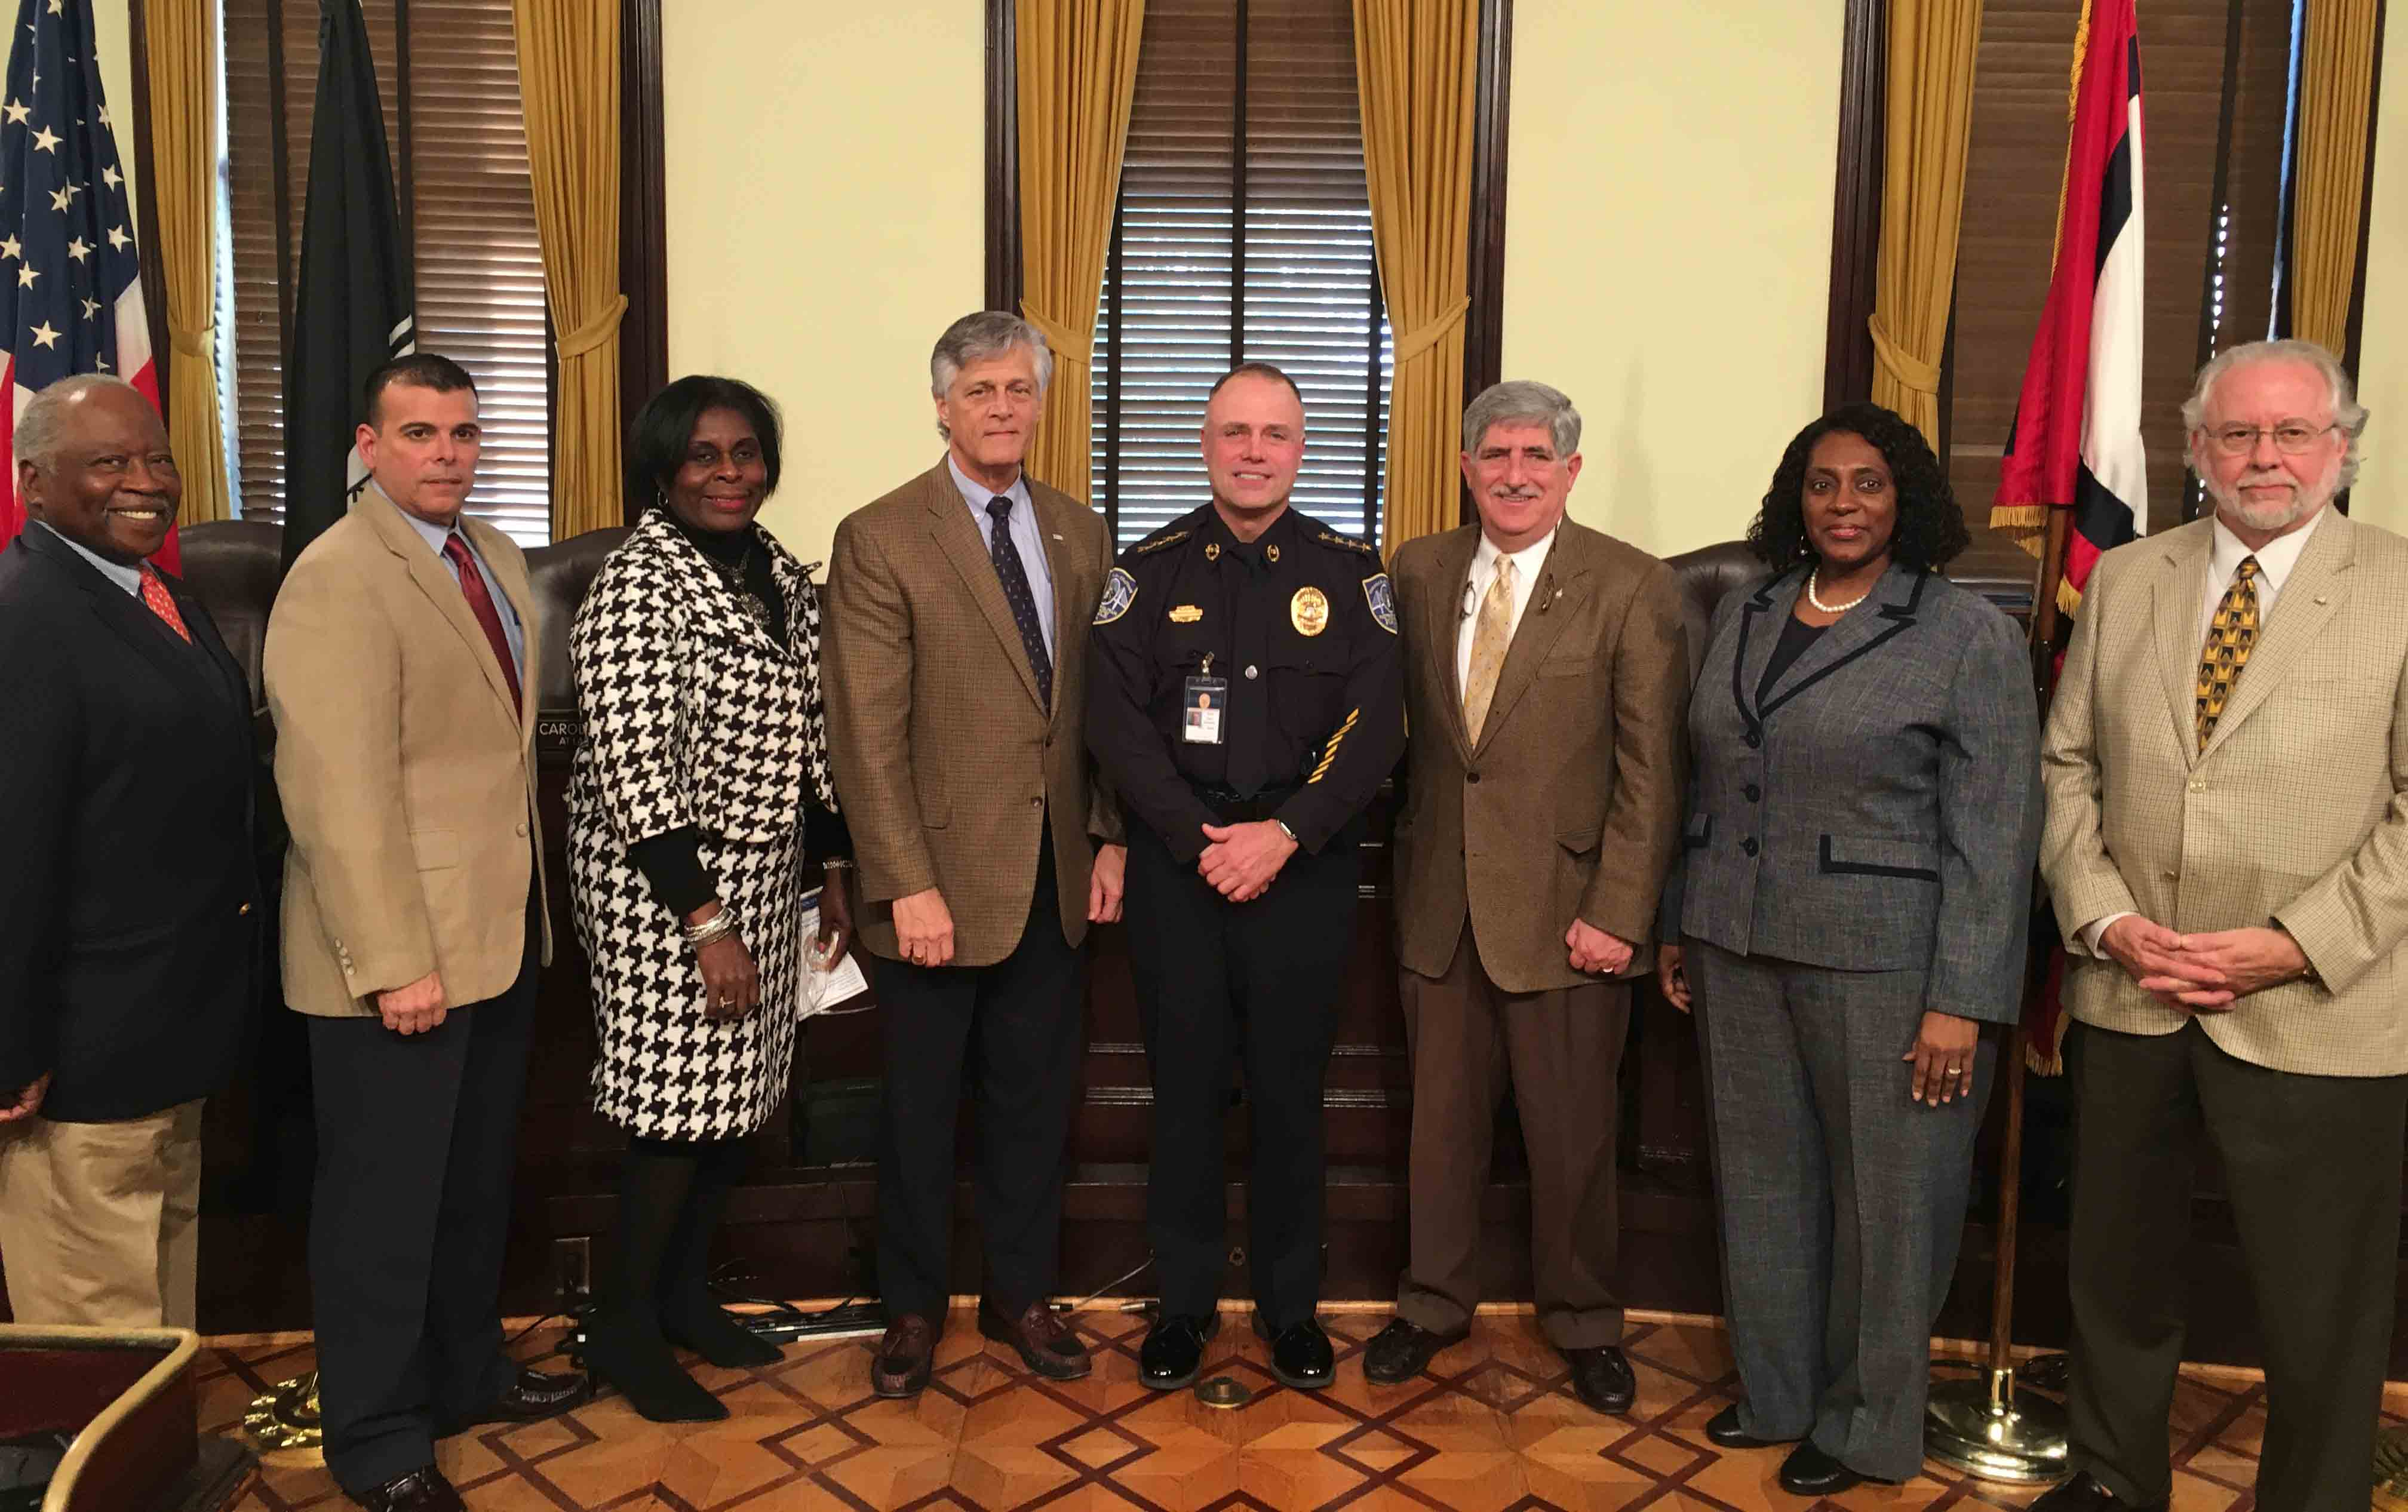 Revenew with City Manager, Mayor and Aldermen